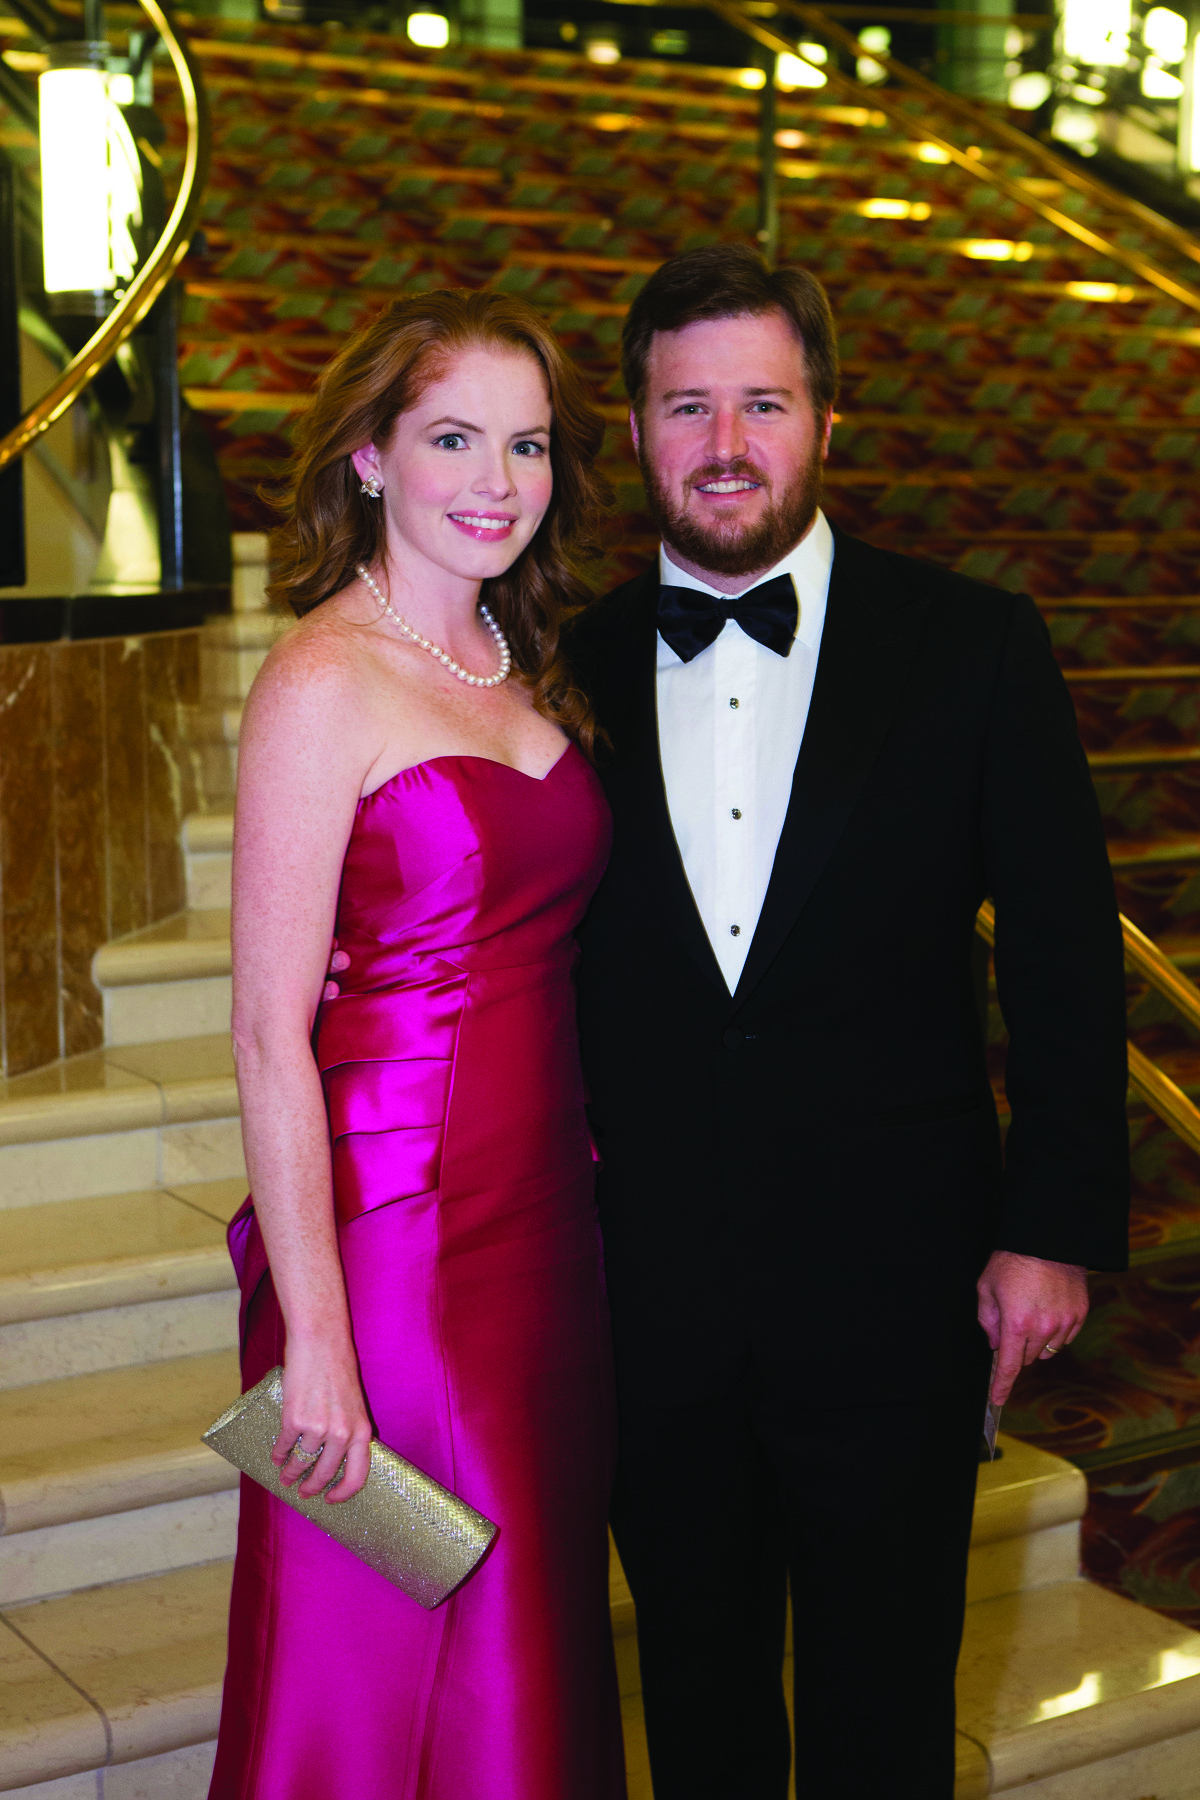 Society Scene photos - Tara Vecellio, left, and Christopher Vecellio support the Raymond F. Kravis Center for the Performing Arts at its annual black-tie gala, which featured an evening of dancing and dining.